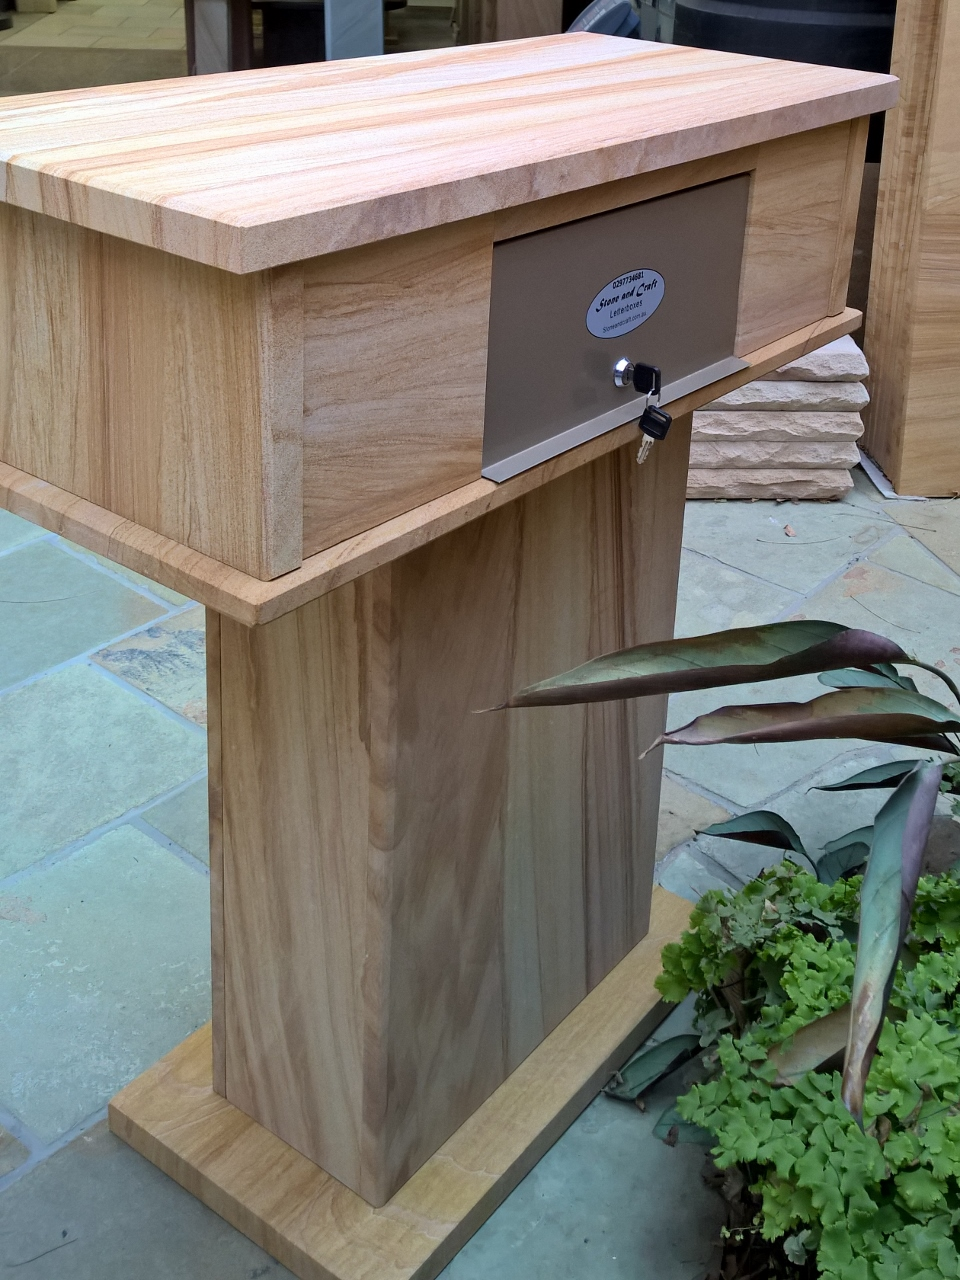 56. Extra wide sandstone letterbox with stackerstone front opening is wide enough to fit A4 magazines. Fitted with aluminium lock 2 key. Size 760x340 Hight 870mm detail from the back $790